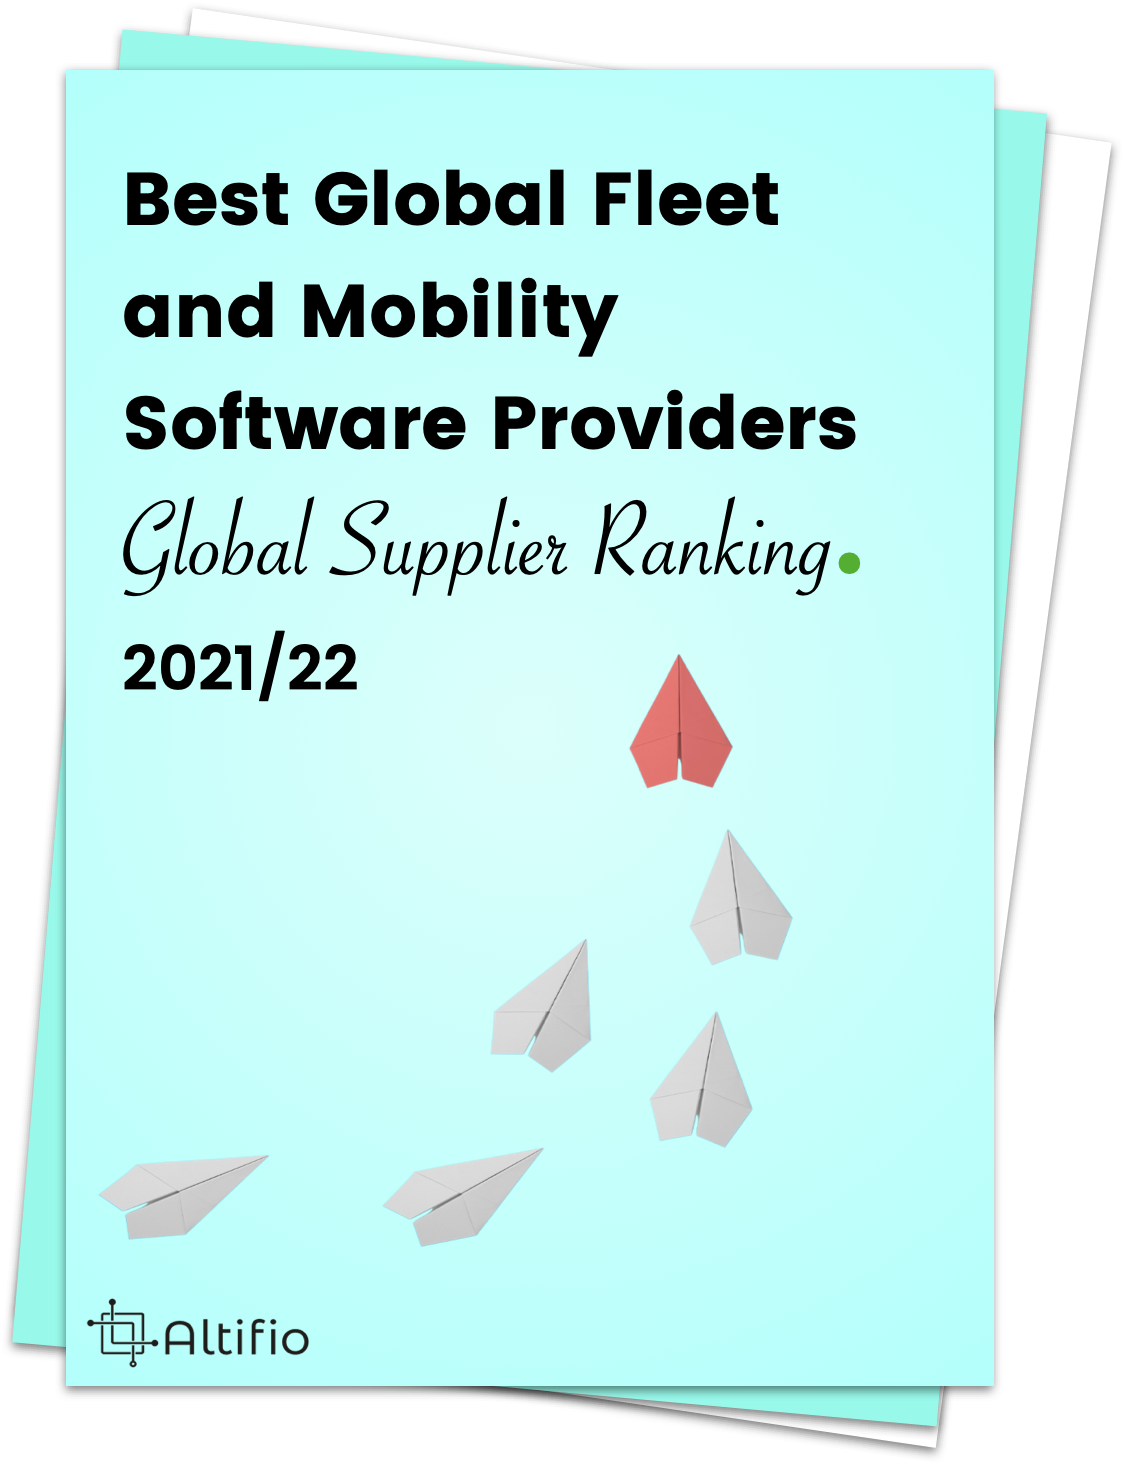 Best Global Fleet and Mobility Software Providers Global Supplier Ranking. 2021/22